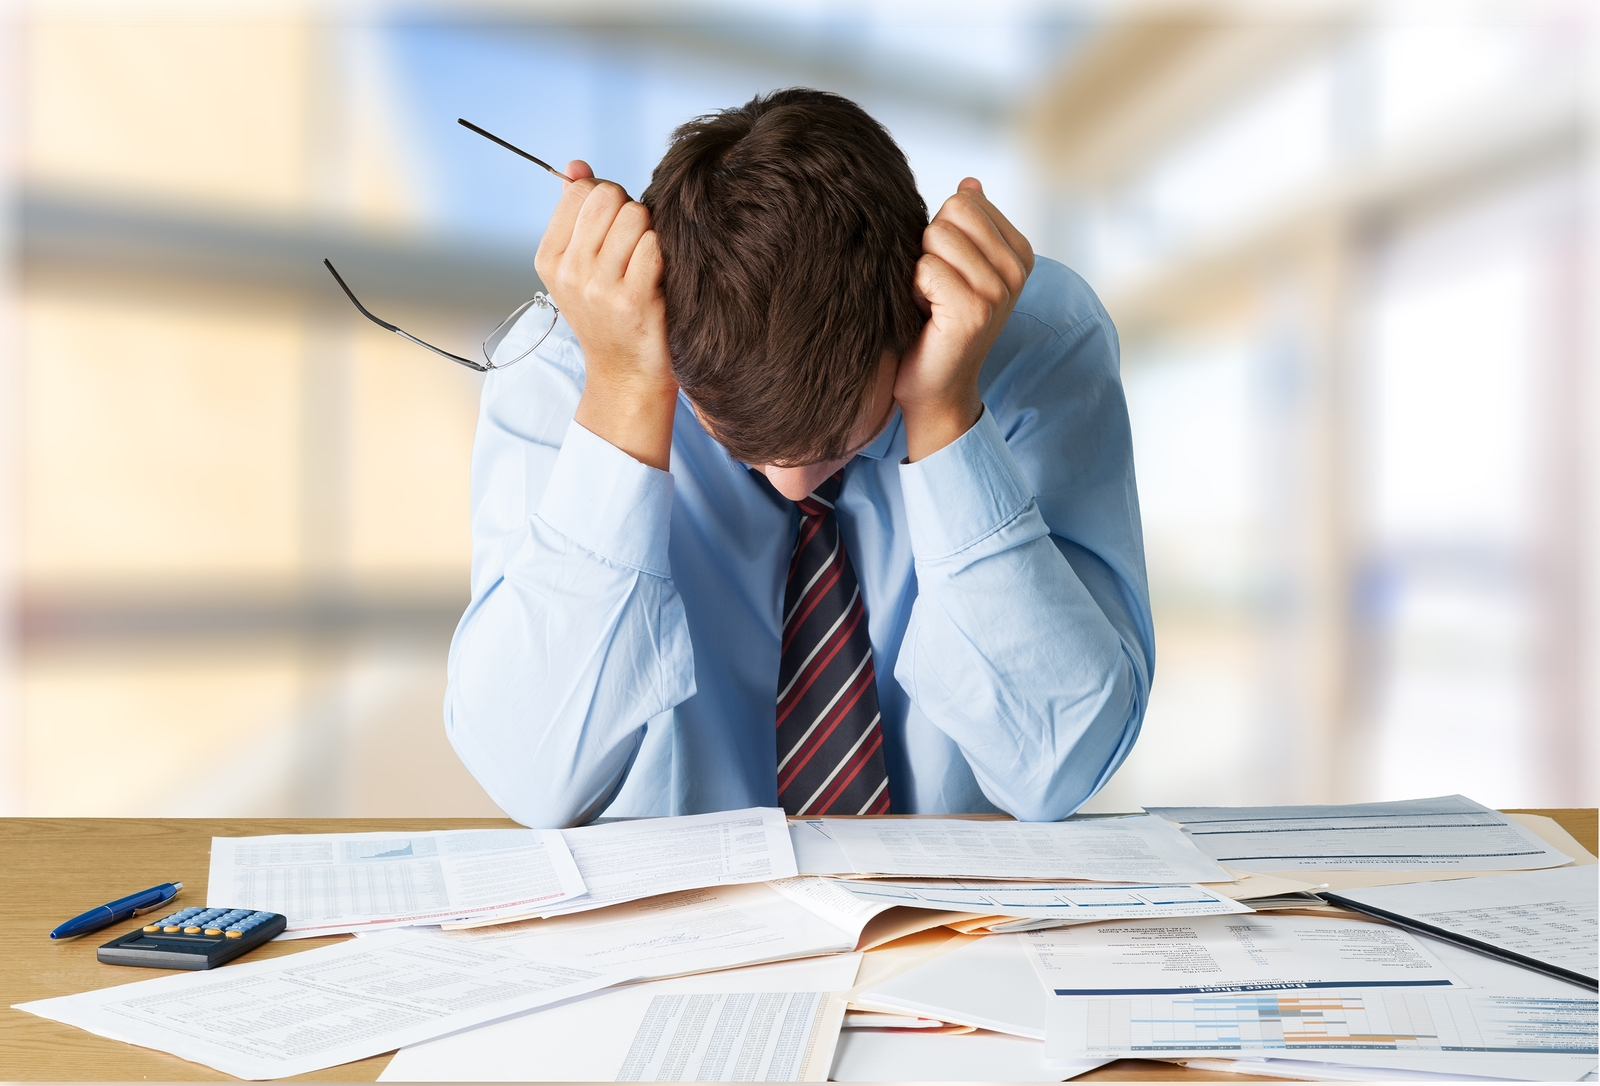 Can You File A Claim For A Workplace Stress Injury?